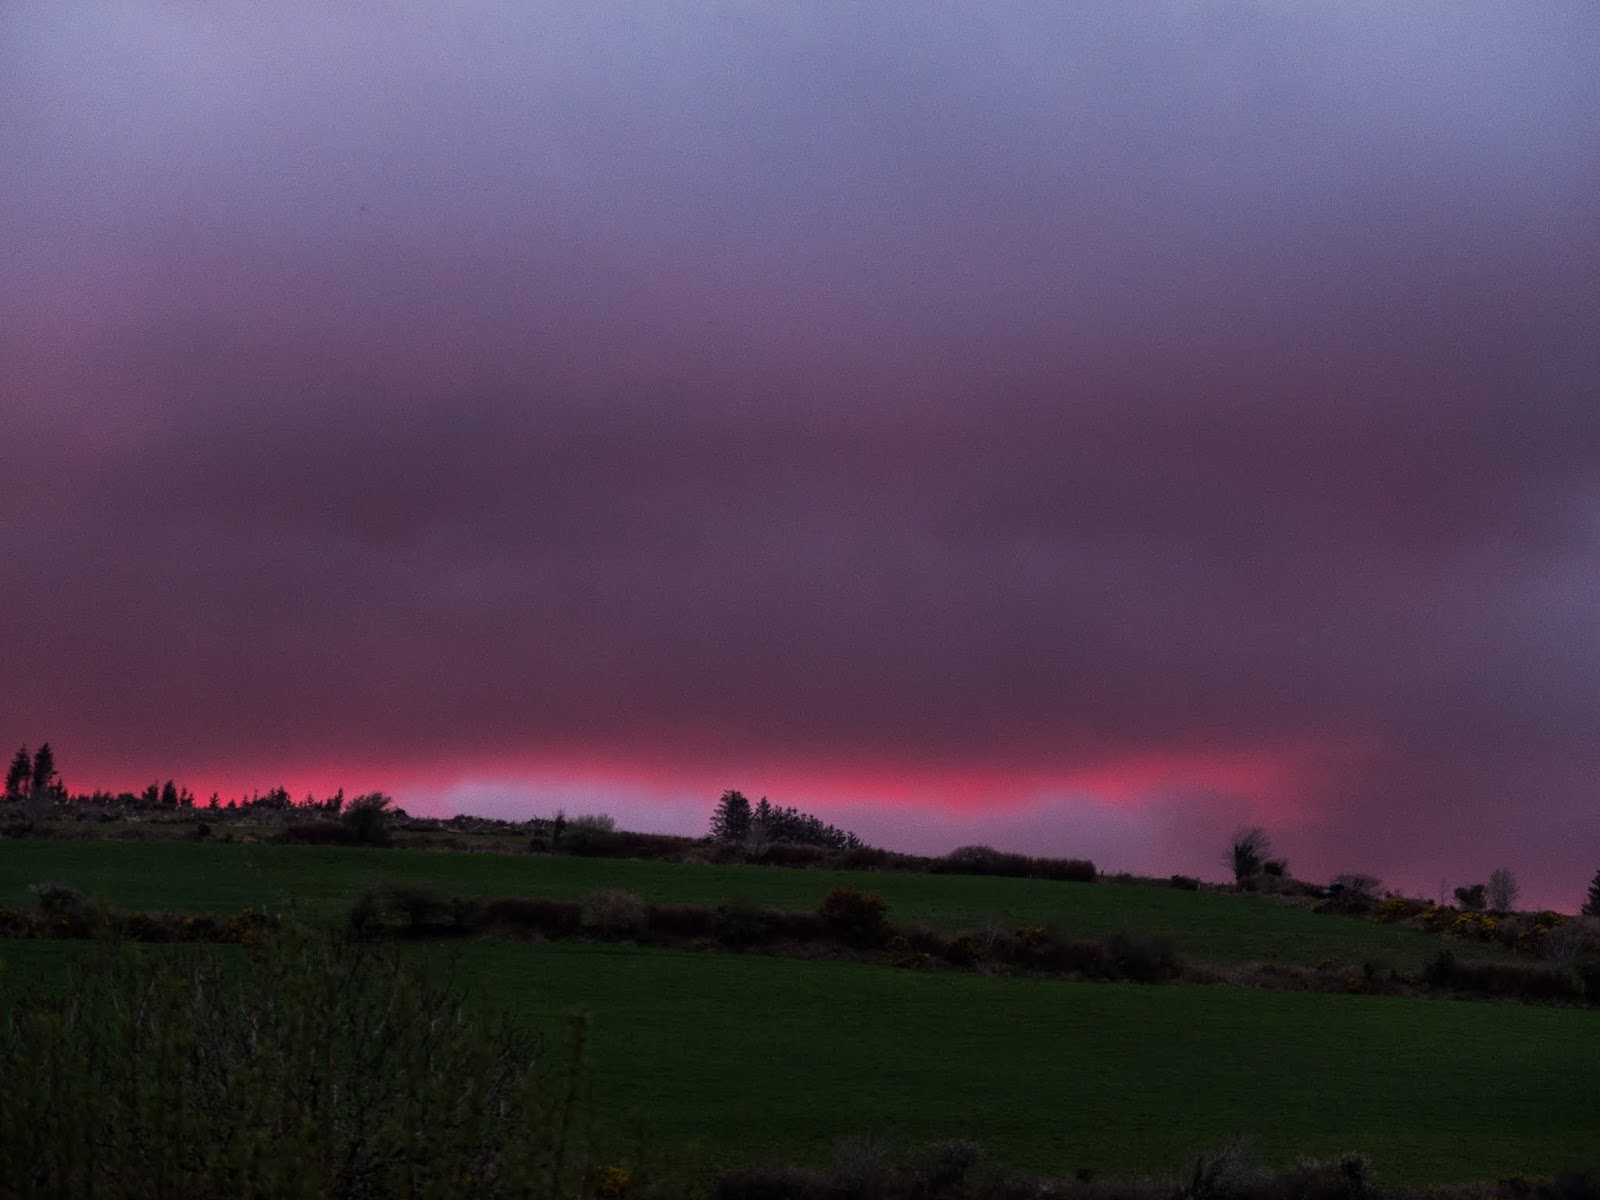 Pink ribbon in a cloud after a sundown over a mountain side in Co.Cork, Ireland.